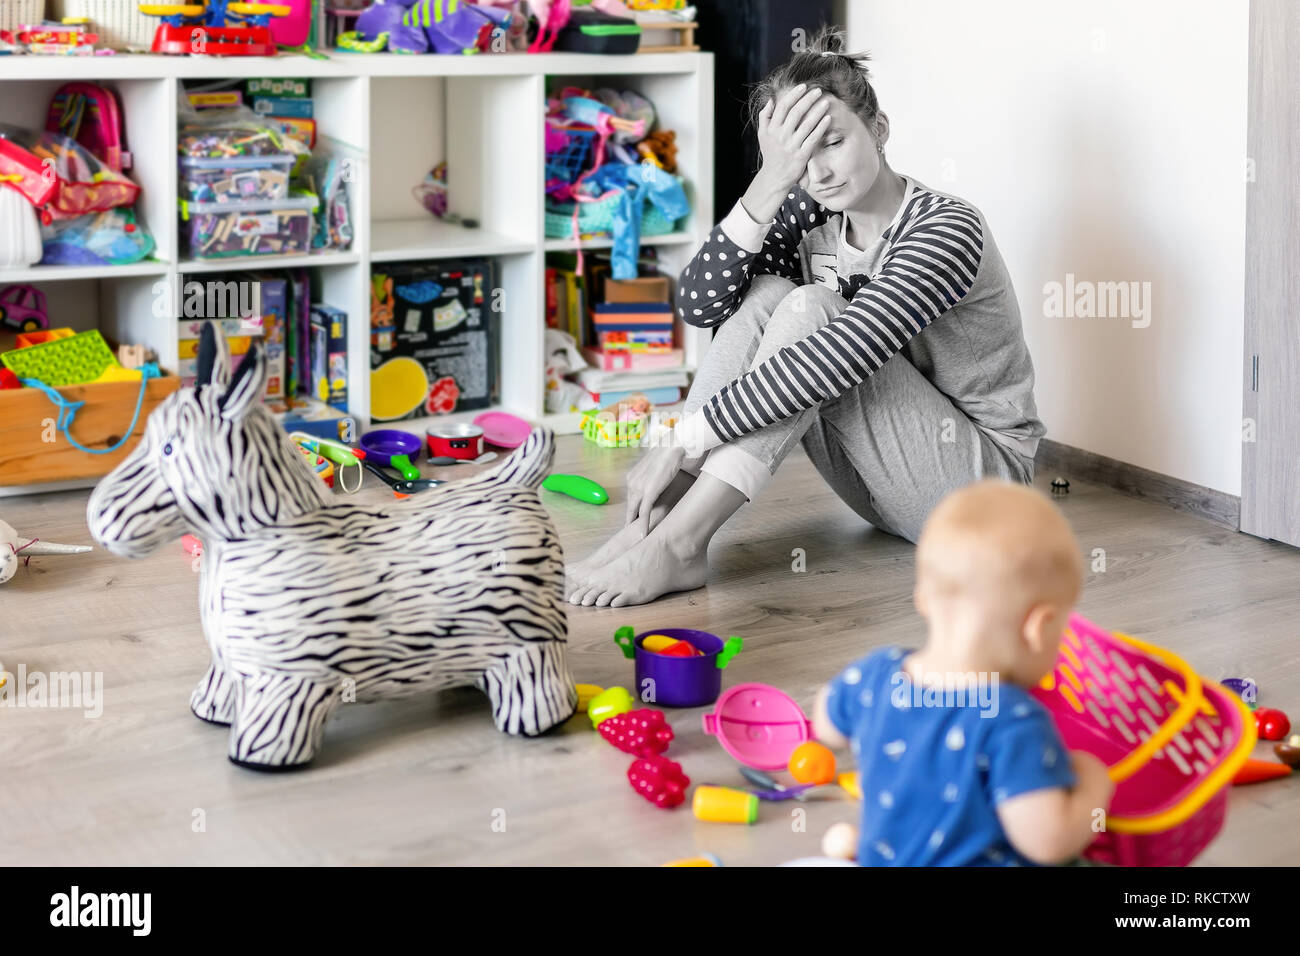 Tired of everyday household mother sitting on floor with hands on face. Kid playing in messy room. Scaterred toys and disorder. Happy parenting - Stock Image